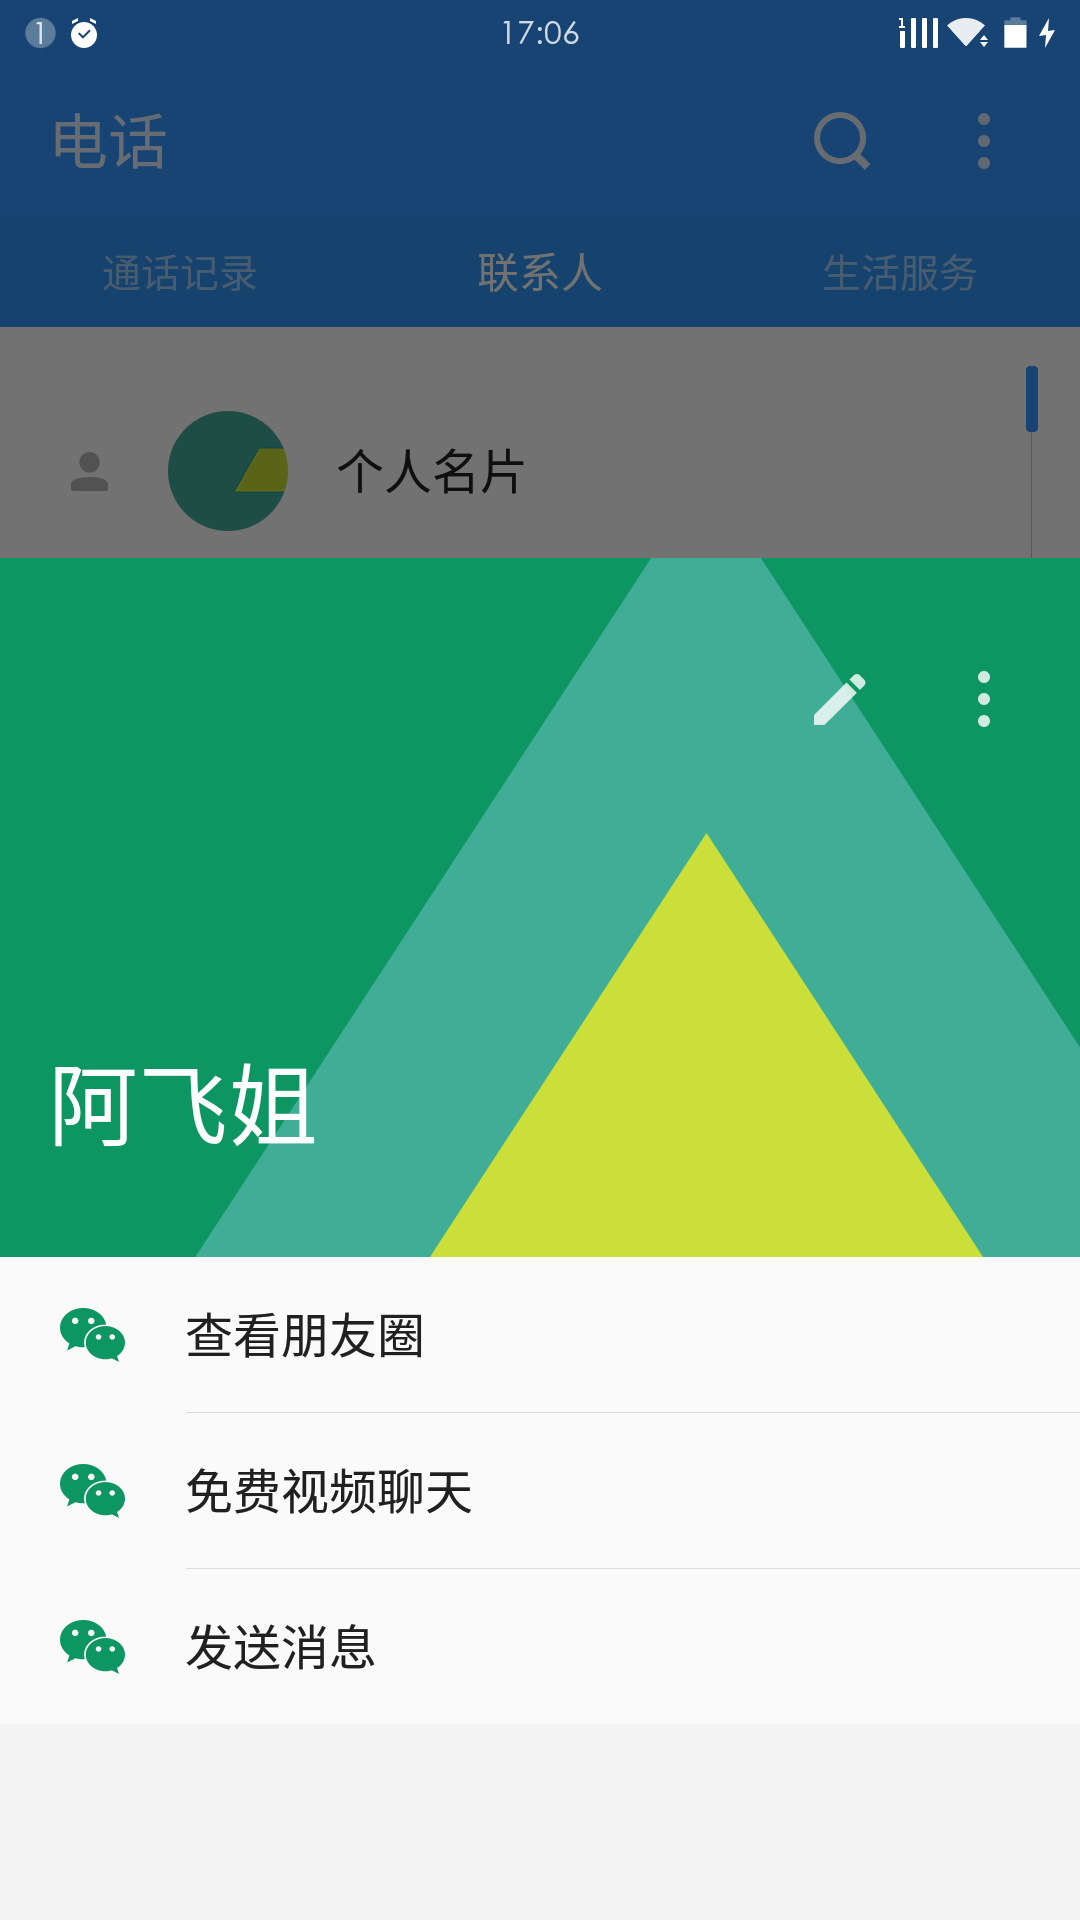 Screenshot_2015-09-29-17-06-57.png